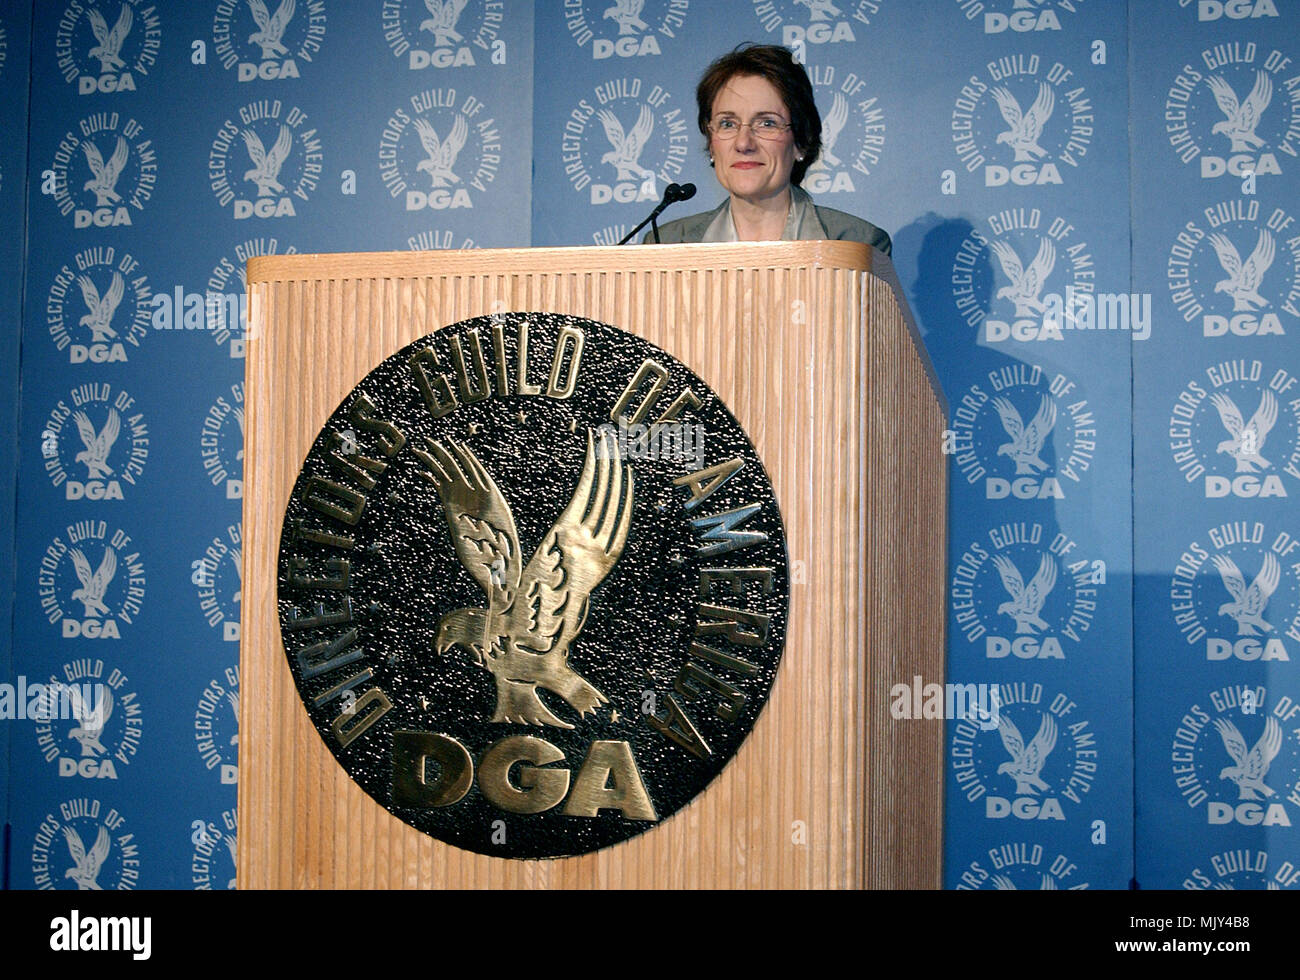 The president of th Director Guild of America, Martha Coolidge  Announce DGA nominees for Outstanding Directorial Achievement in Feature Film For 2002 at the DGA in Los Angeles. January 21, 2003          -            CoolidgeMartha_DGAann907.jpgCoolidgeMartha_DGAann907  Event in Hollywood Life - California,  Red Carpet Event, Vertical, USA, Film Industry, Celebrities,  Photography, Bestof, Arts Culture and Entertainment, Topix Celebrities fashion /  from the Red Carpet-, one person, Vertical, Best of, Hollywood Life, Event in Hollywood Life - California,  Red Carpet and backstage, USA, Film In - Stock Image